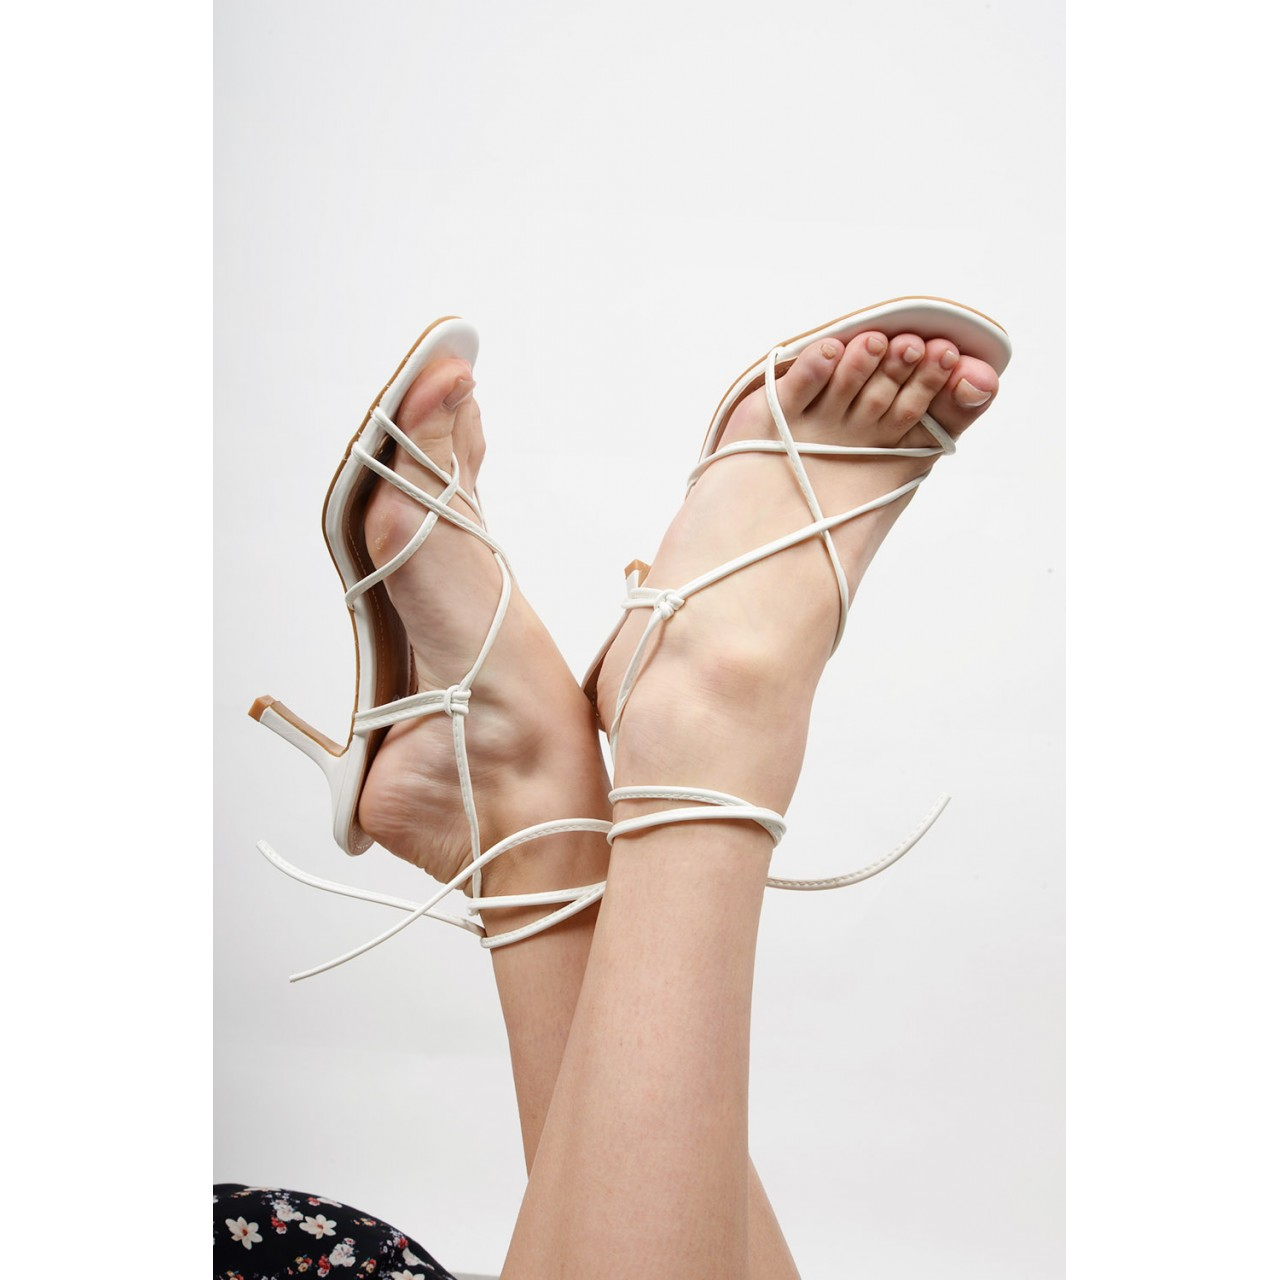 Tie-up mid heel shoe